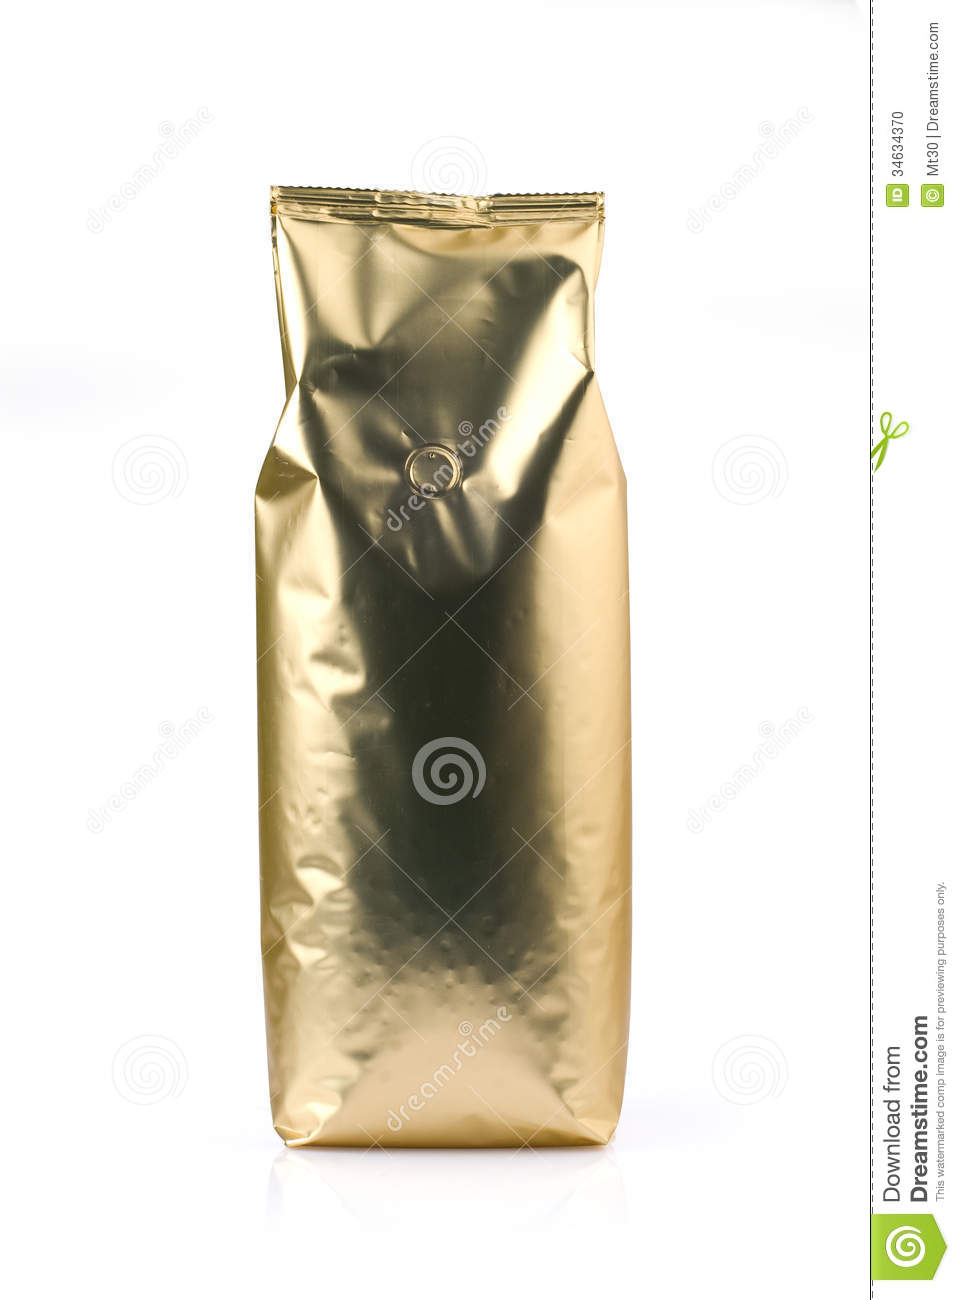 how to open coffee bean bag